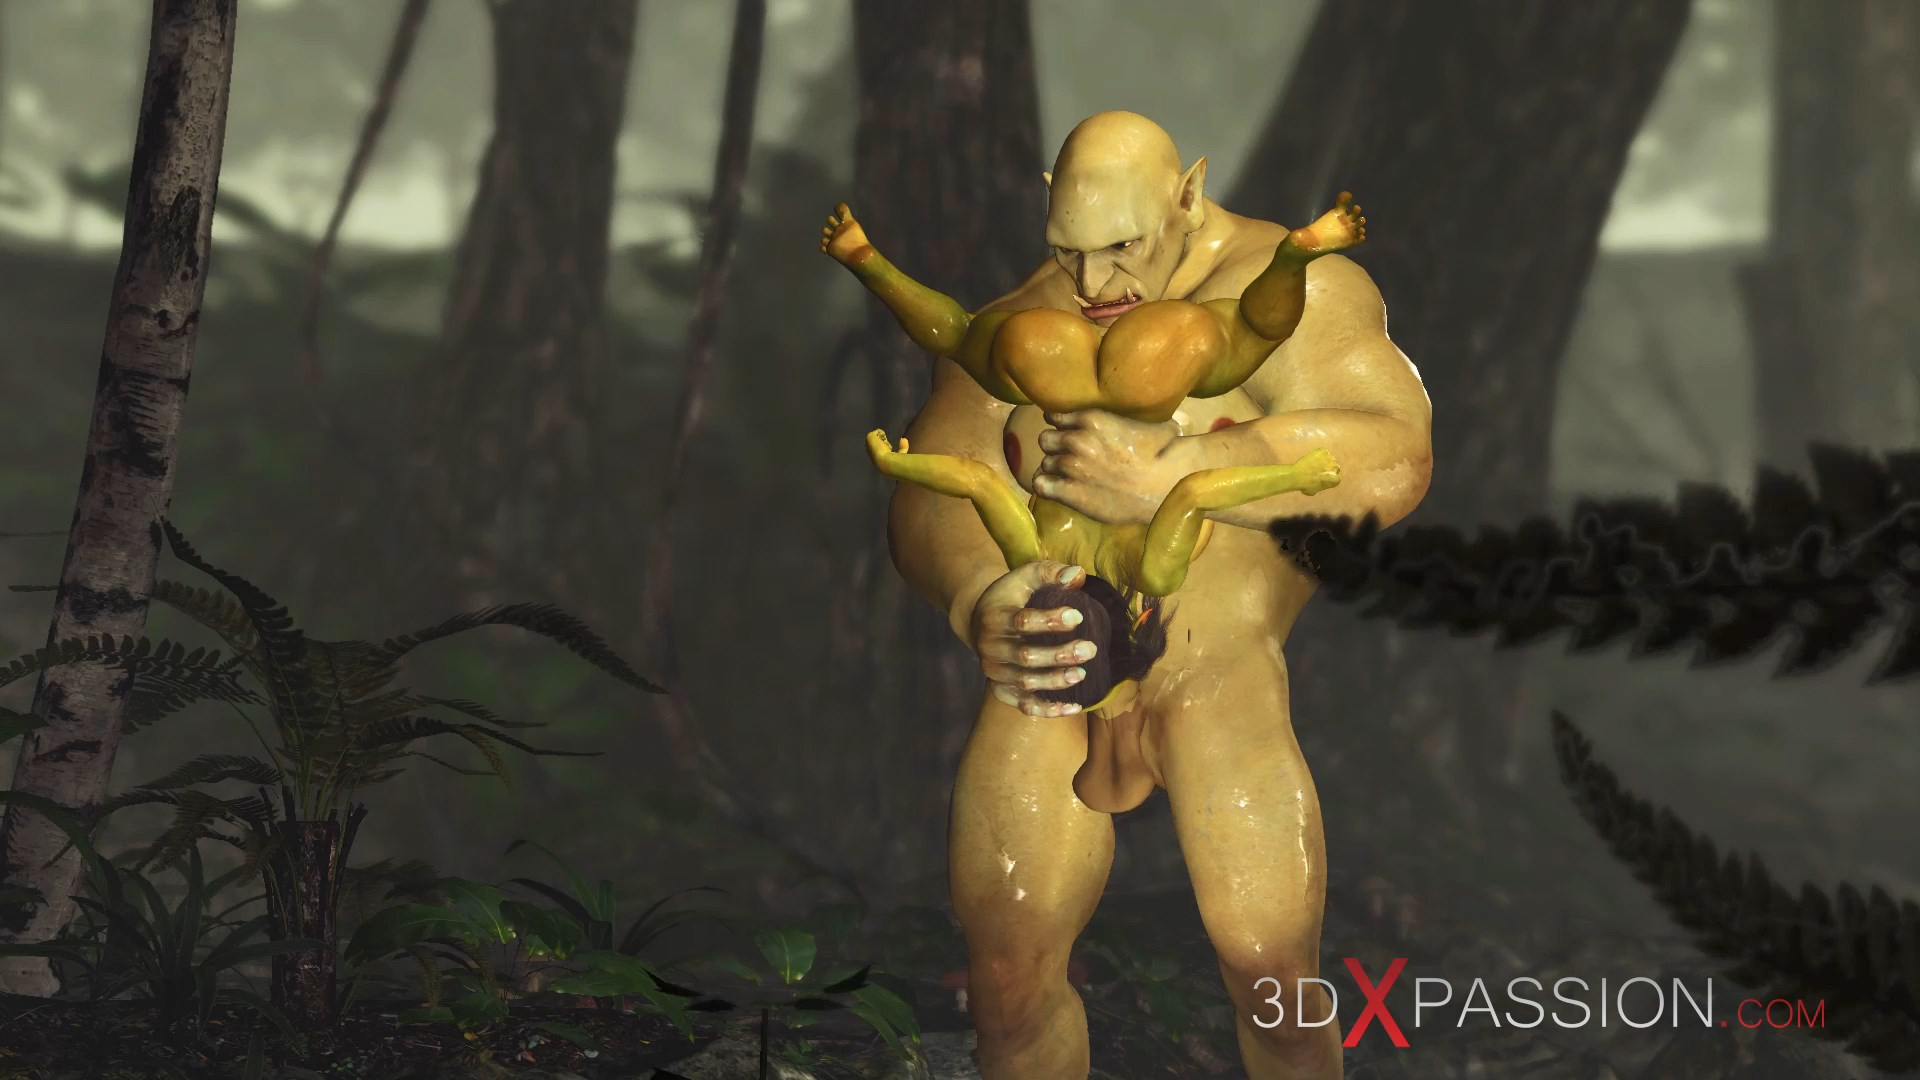 Ogre gagging 69 pose horny female goblin enchanted forest